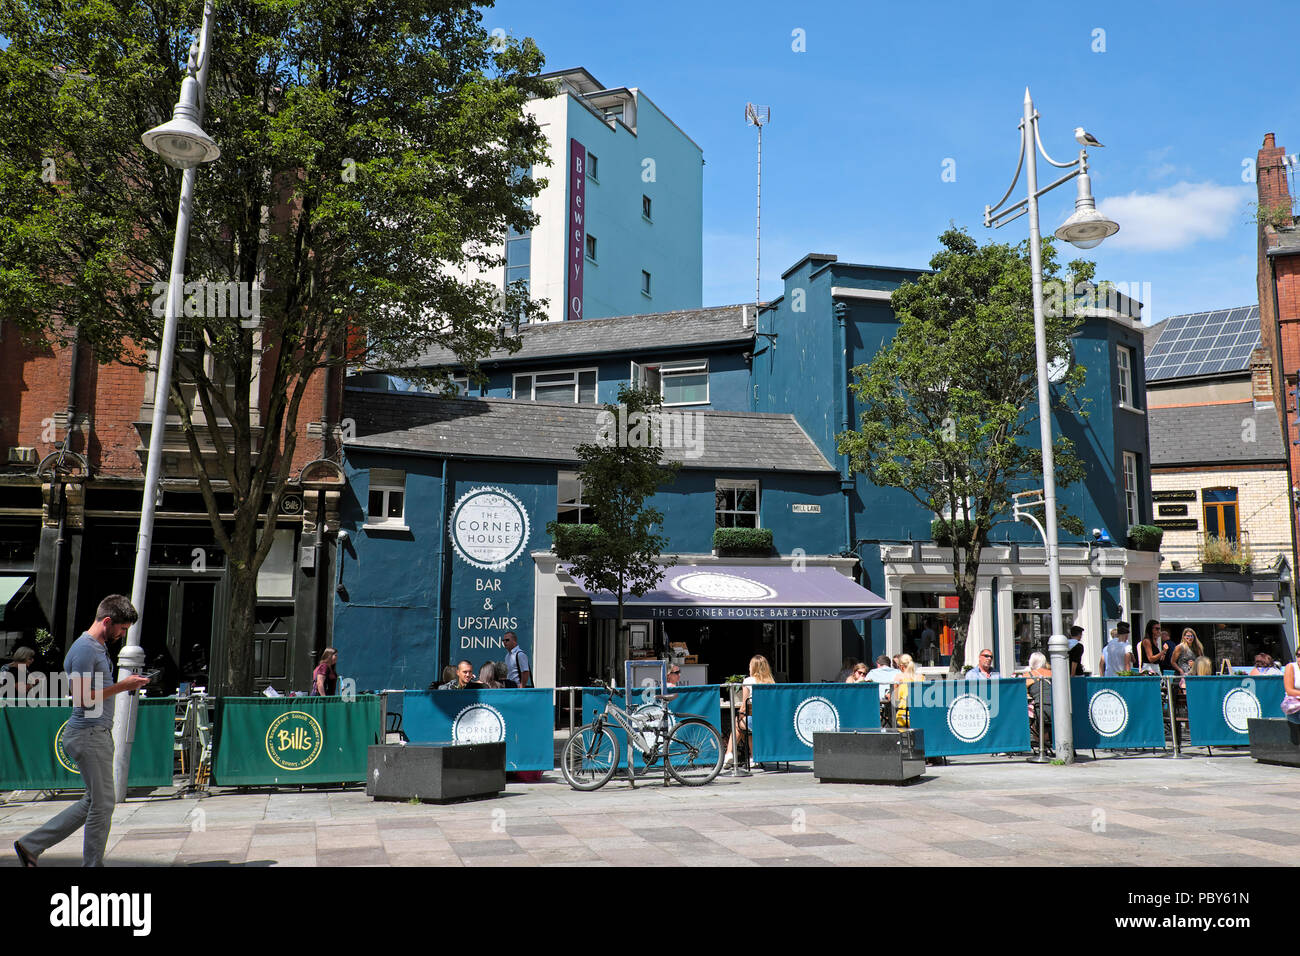 Exterior view of people eating at tables outside The Corner House bar and restaurant in Cardiff city centre Wales UK  KATHY DEWITT - Stock Image